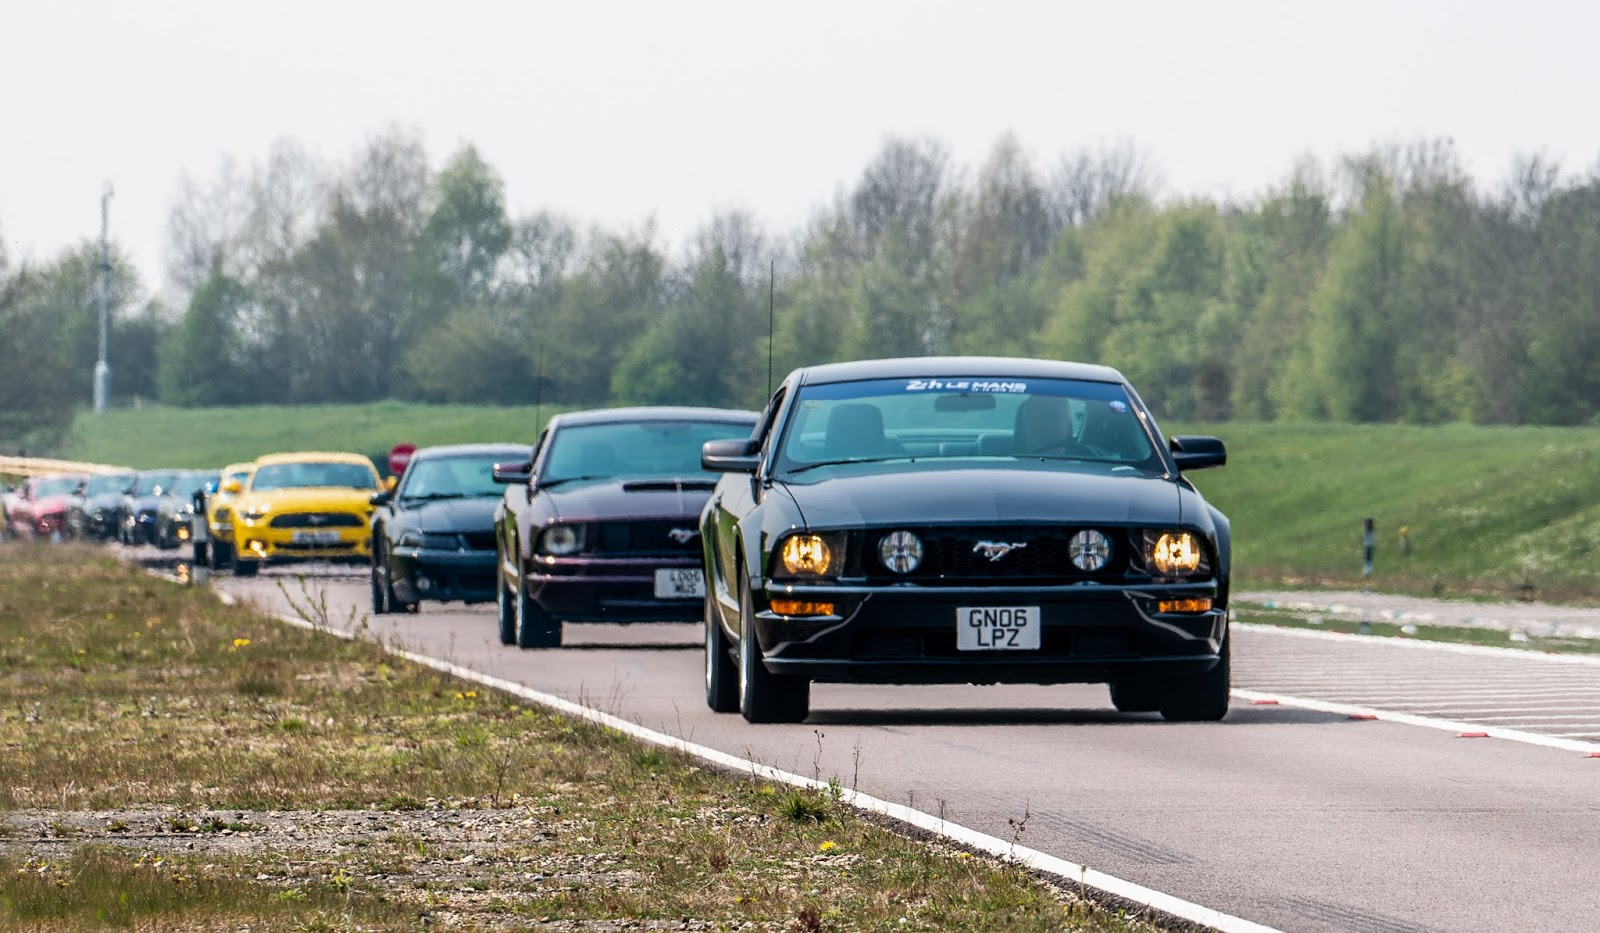 And with fans around the world fuelling the passion including the man with 5000 mustangs and the mustang man the celebrations look set to continue for